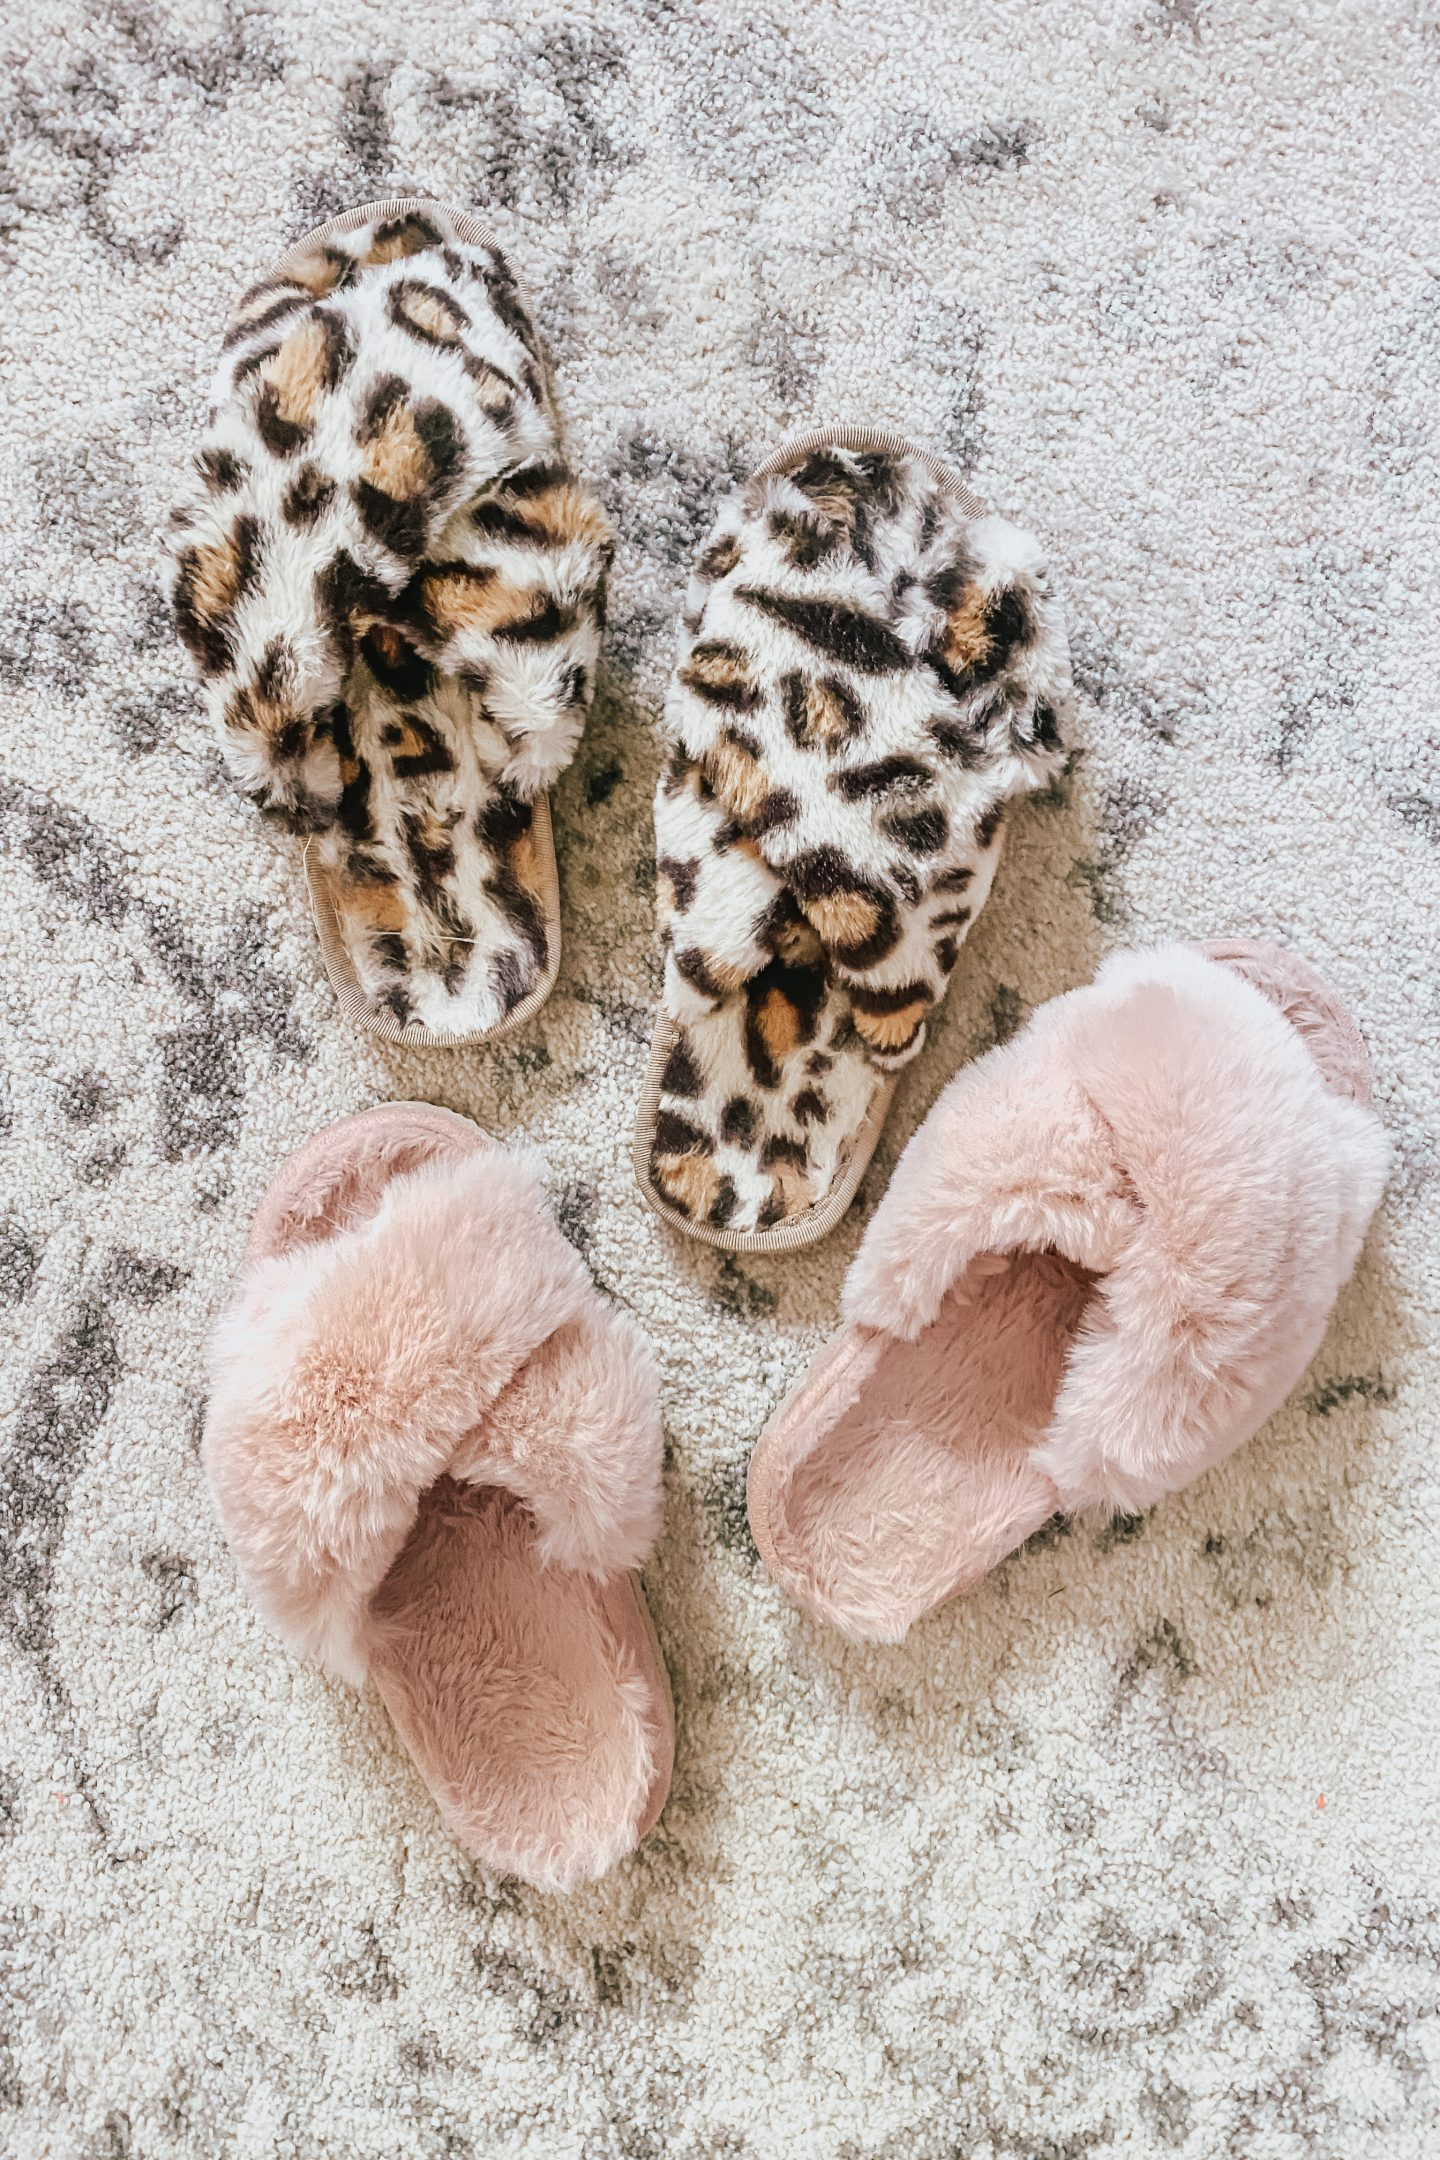 the best Amazon slippers, faux fur slippers, the best slippers for spring time, slippers with arch support